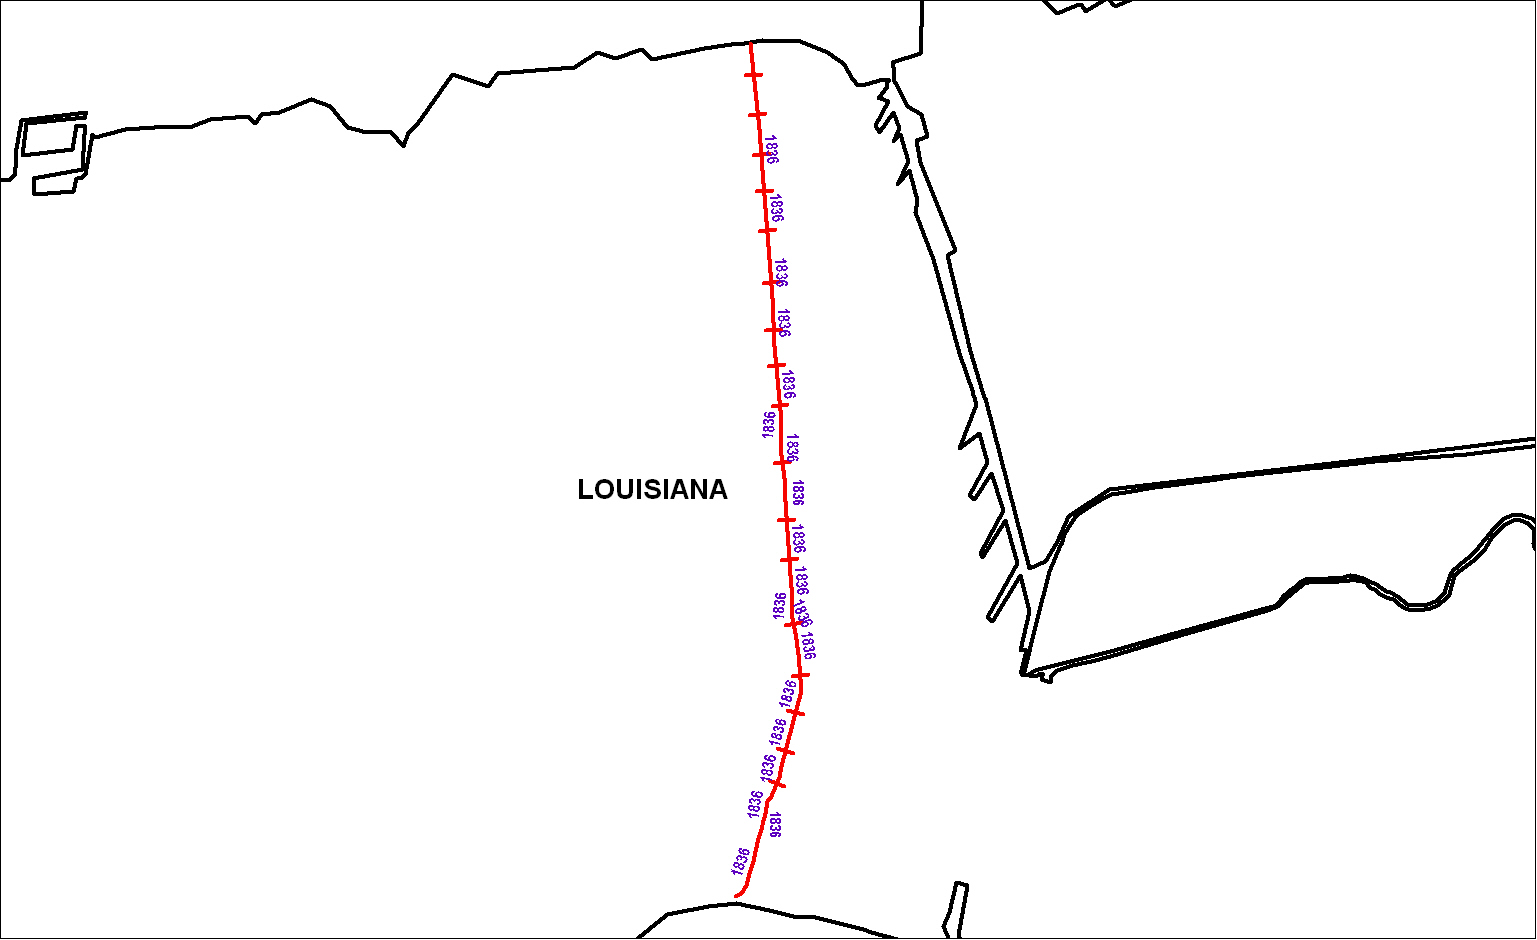 Milnburg & Lake Pontchartrain Railroad map as of 1850